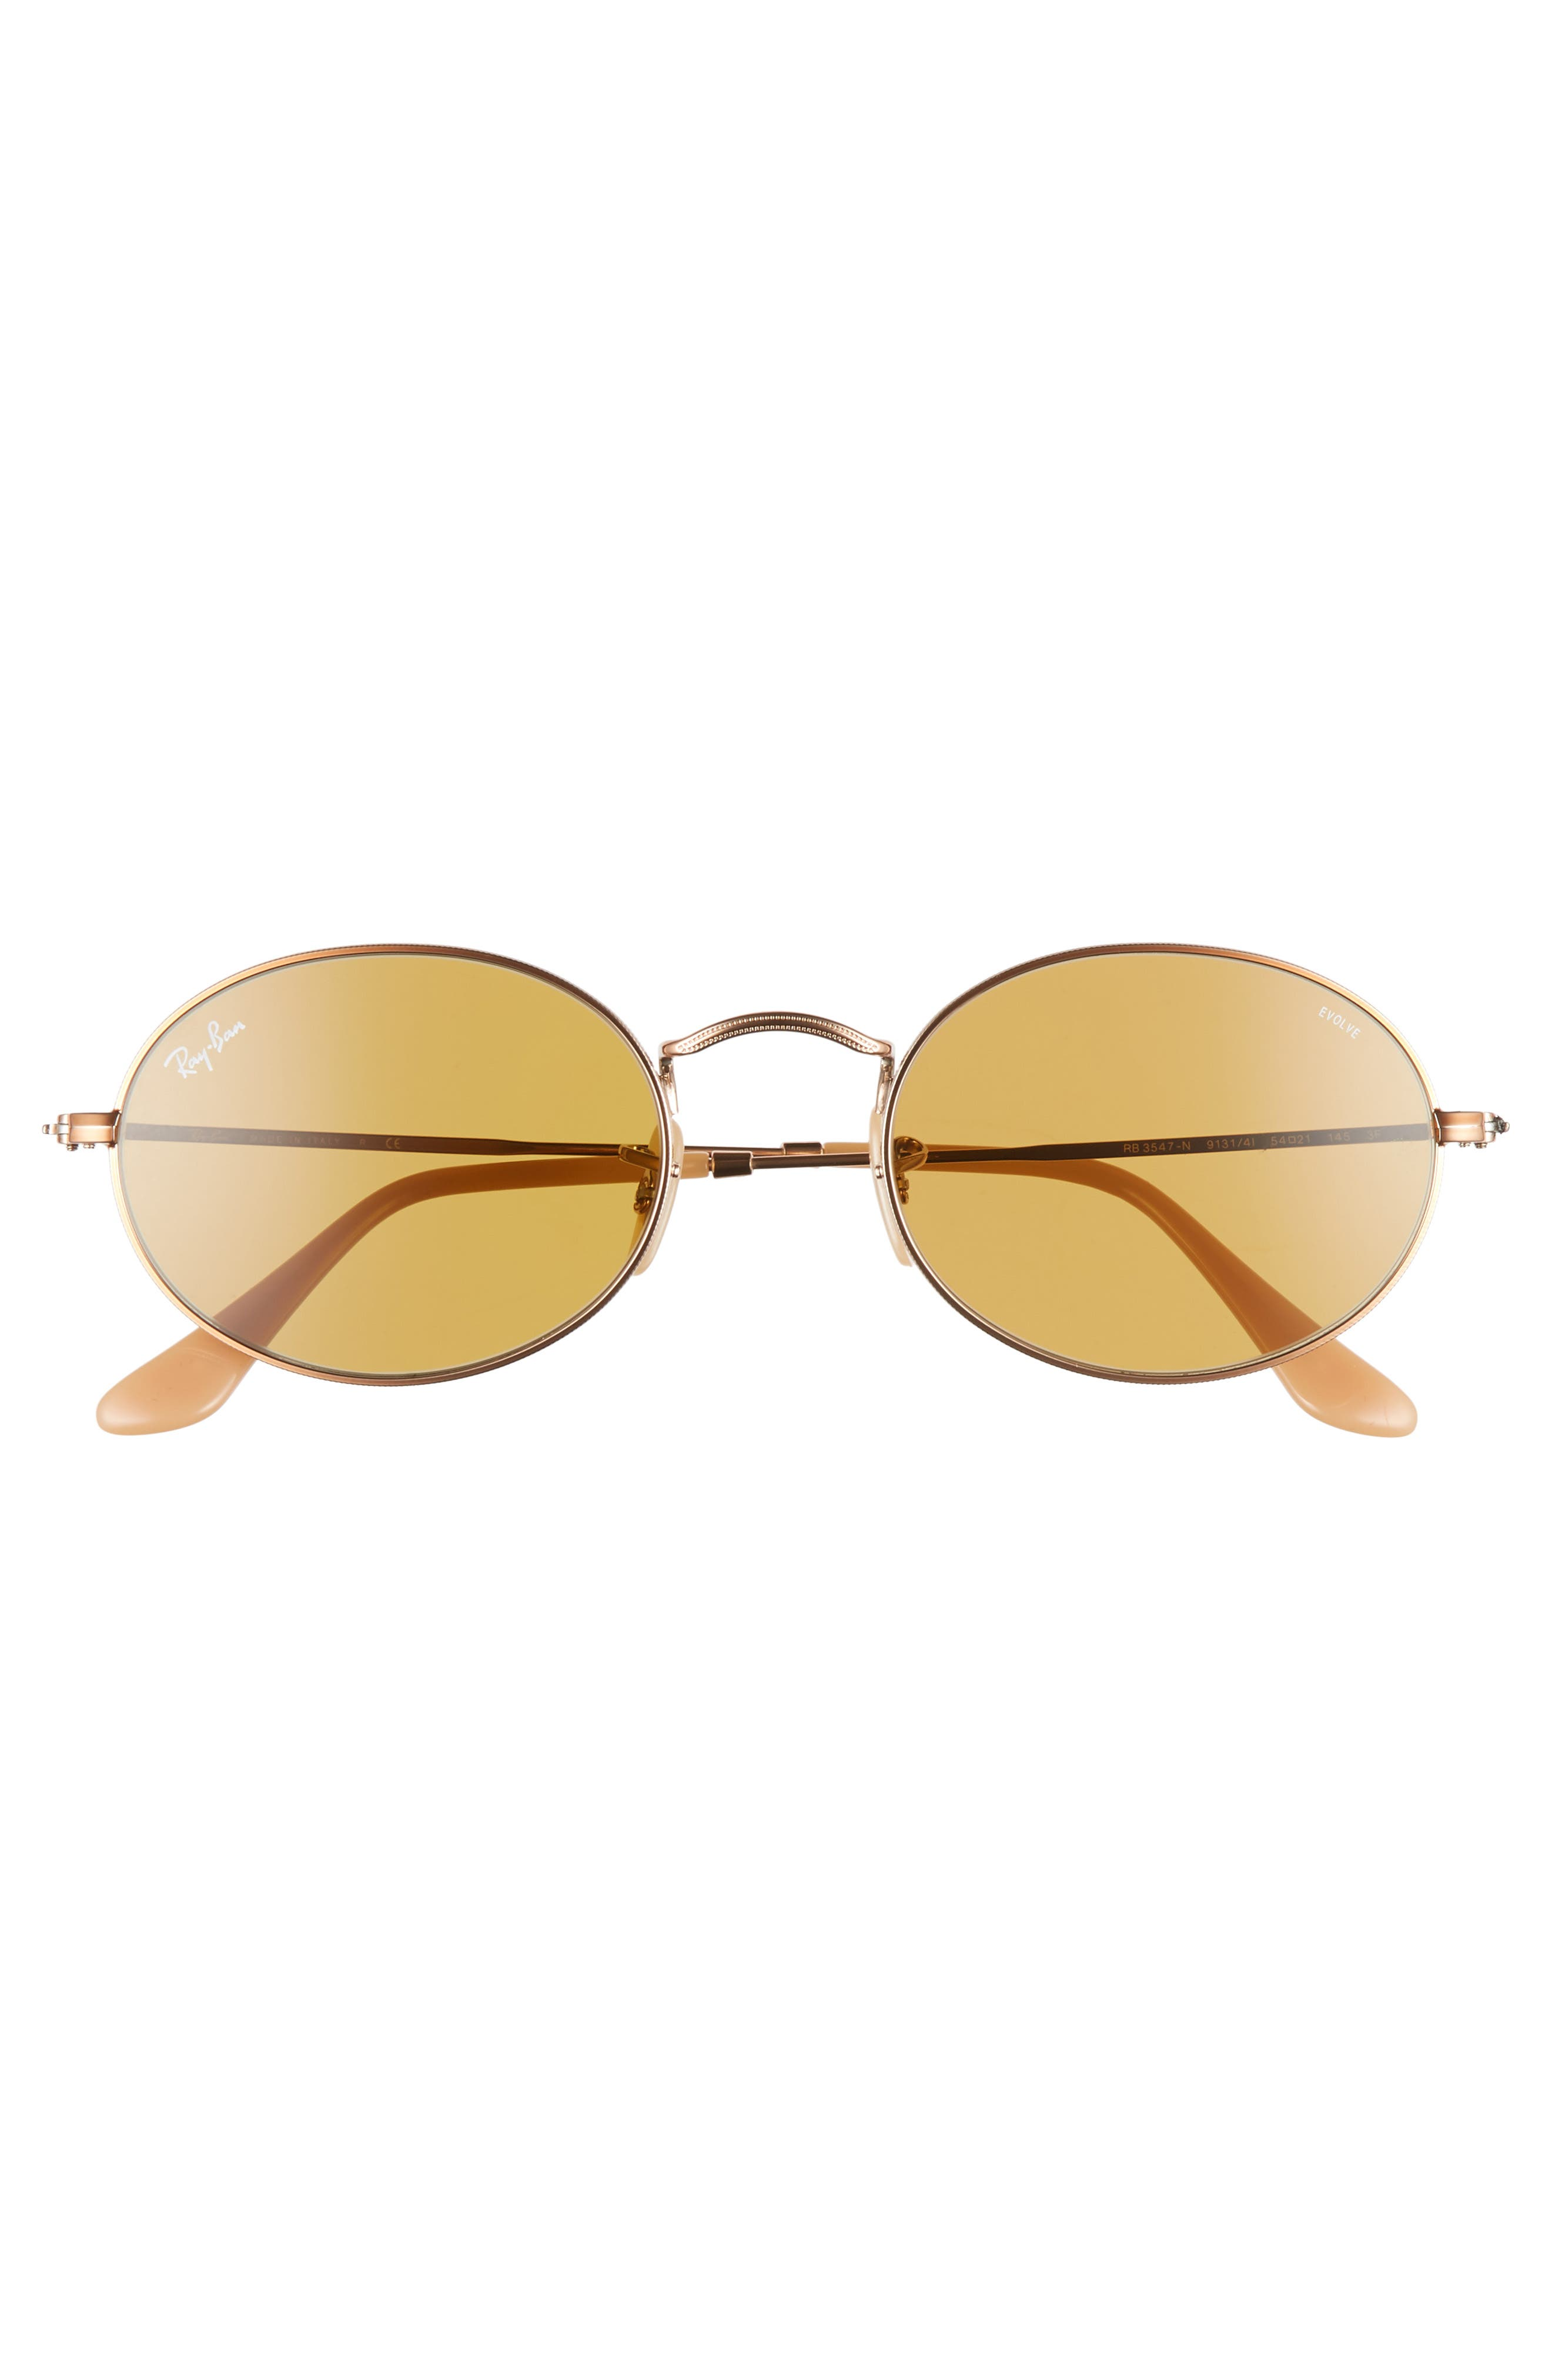 RAY-BAN,                             Evolve 54mm Polarized Oval Sunglasses,                             Alternate thumbnail 3, color,                             GOLD/ COPPER SOLID